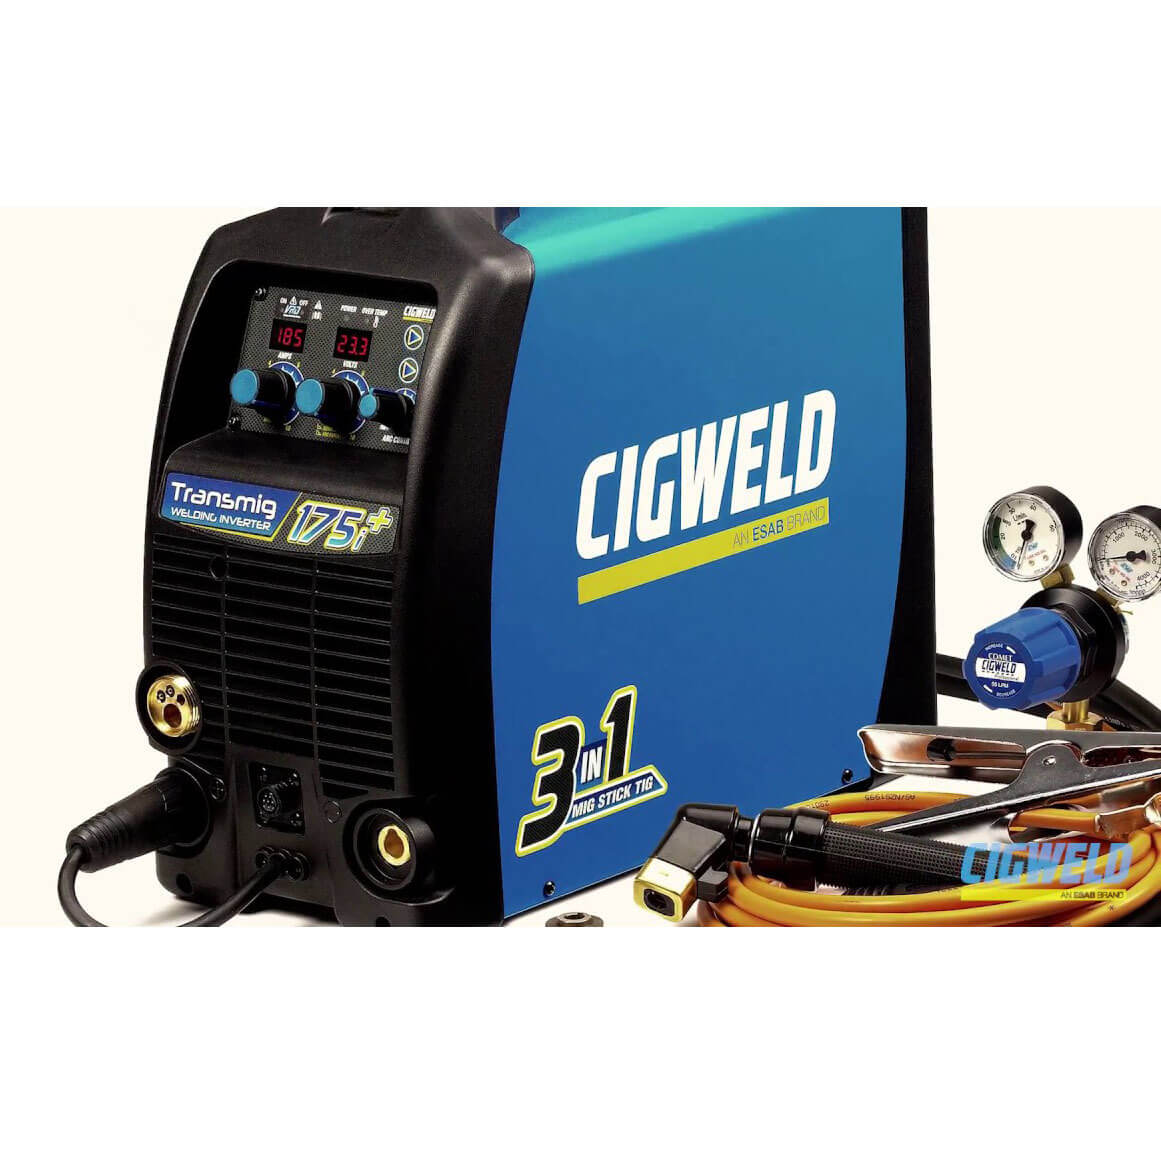 Transmig 175I Plus Multi Process Welder